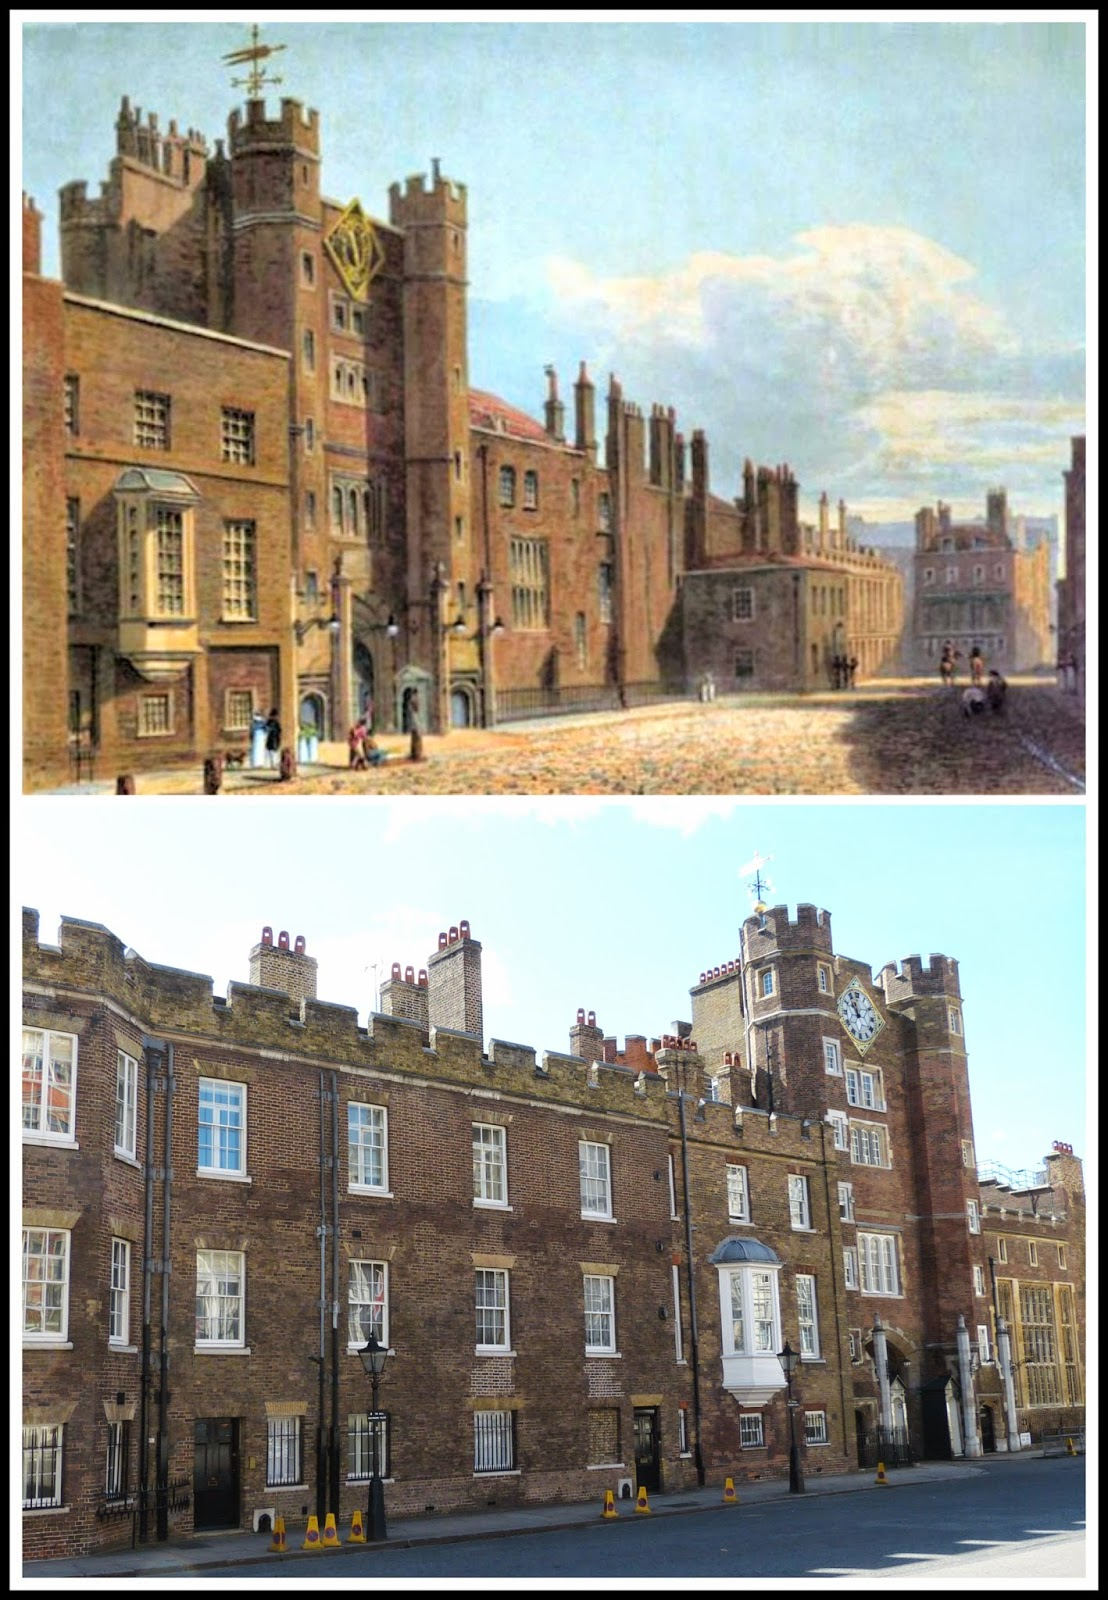 Top: St James' Palace from    The History of the Royal Residences by WH Pyne (1819)  Bottom: St James' Palace today © Andrew Knowles